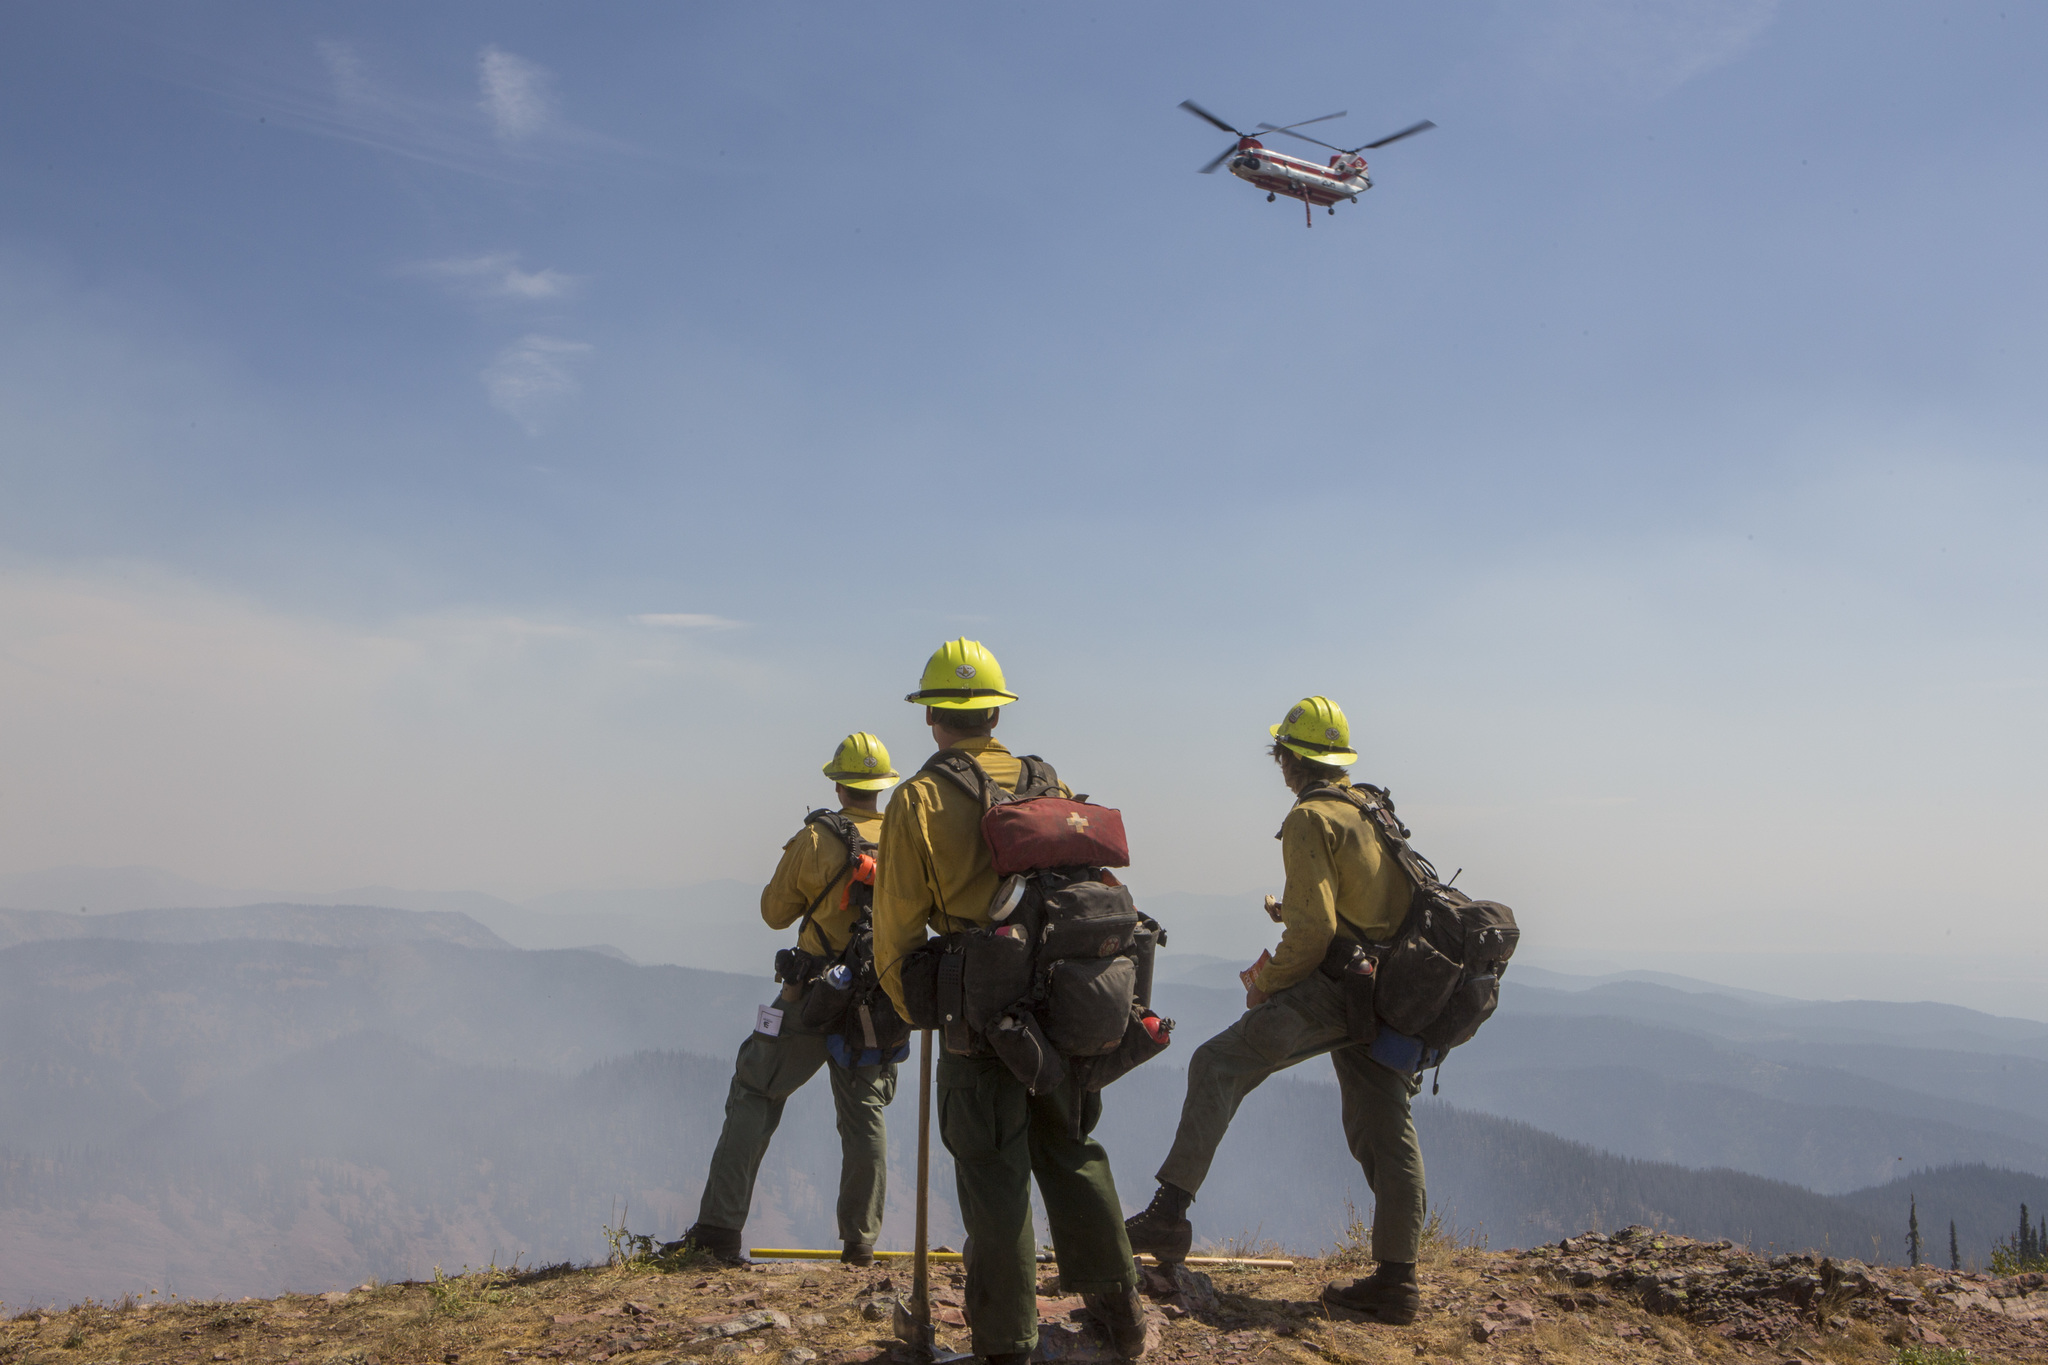 Firefighters watching helicopter on wildfire incident